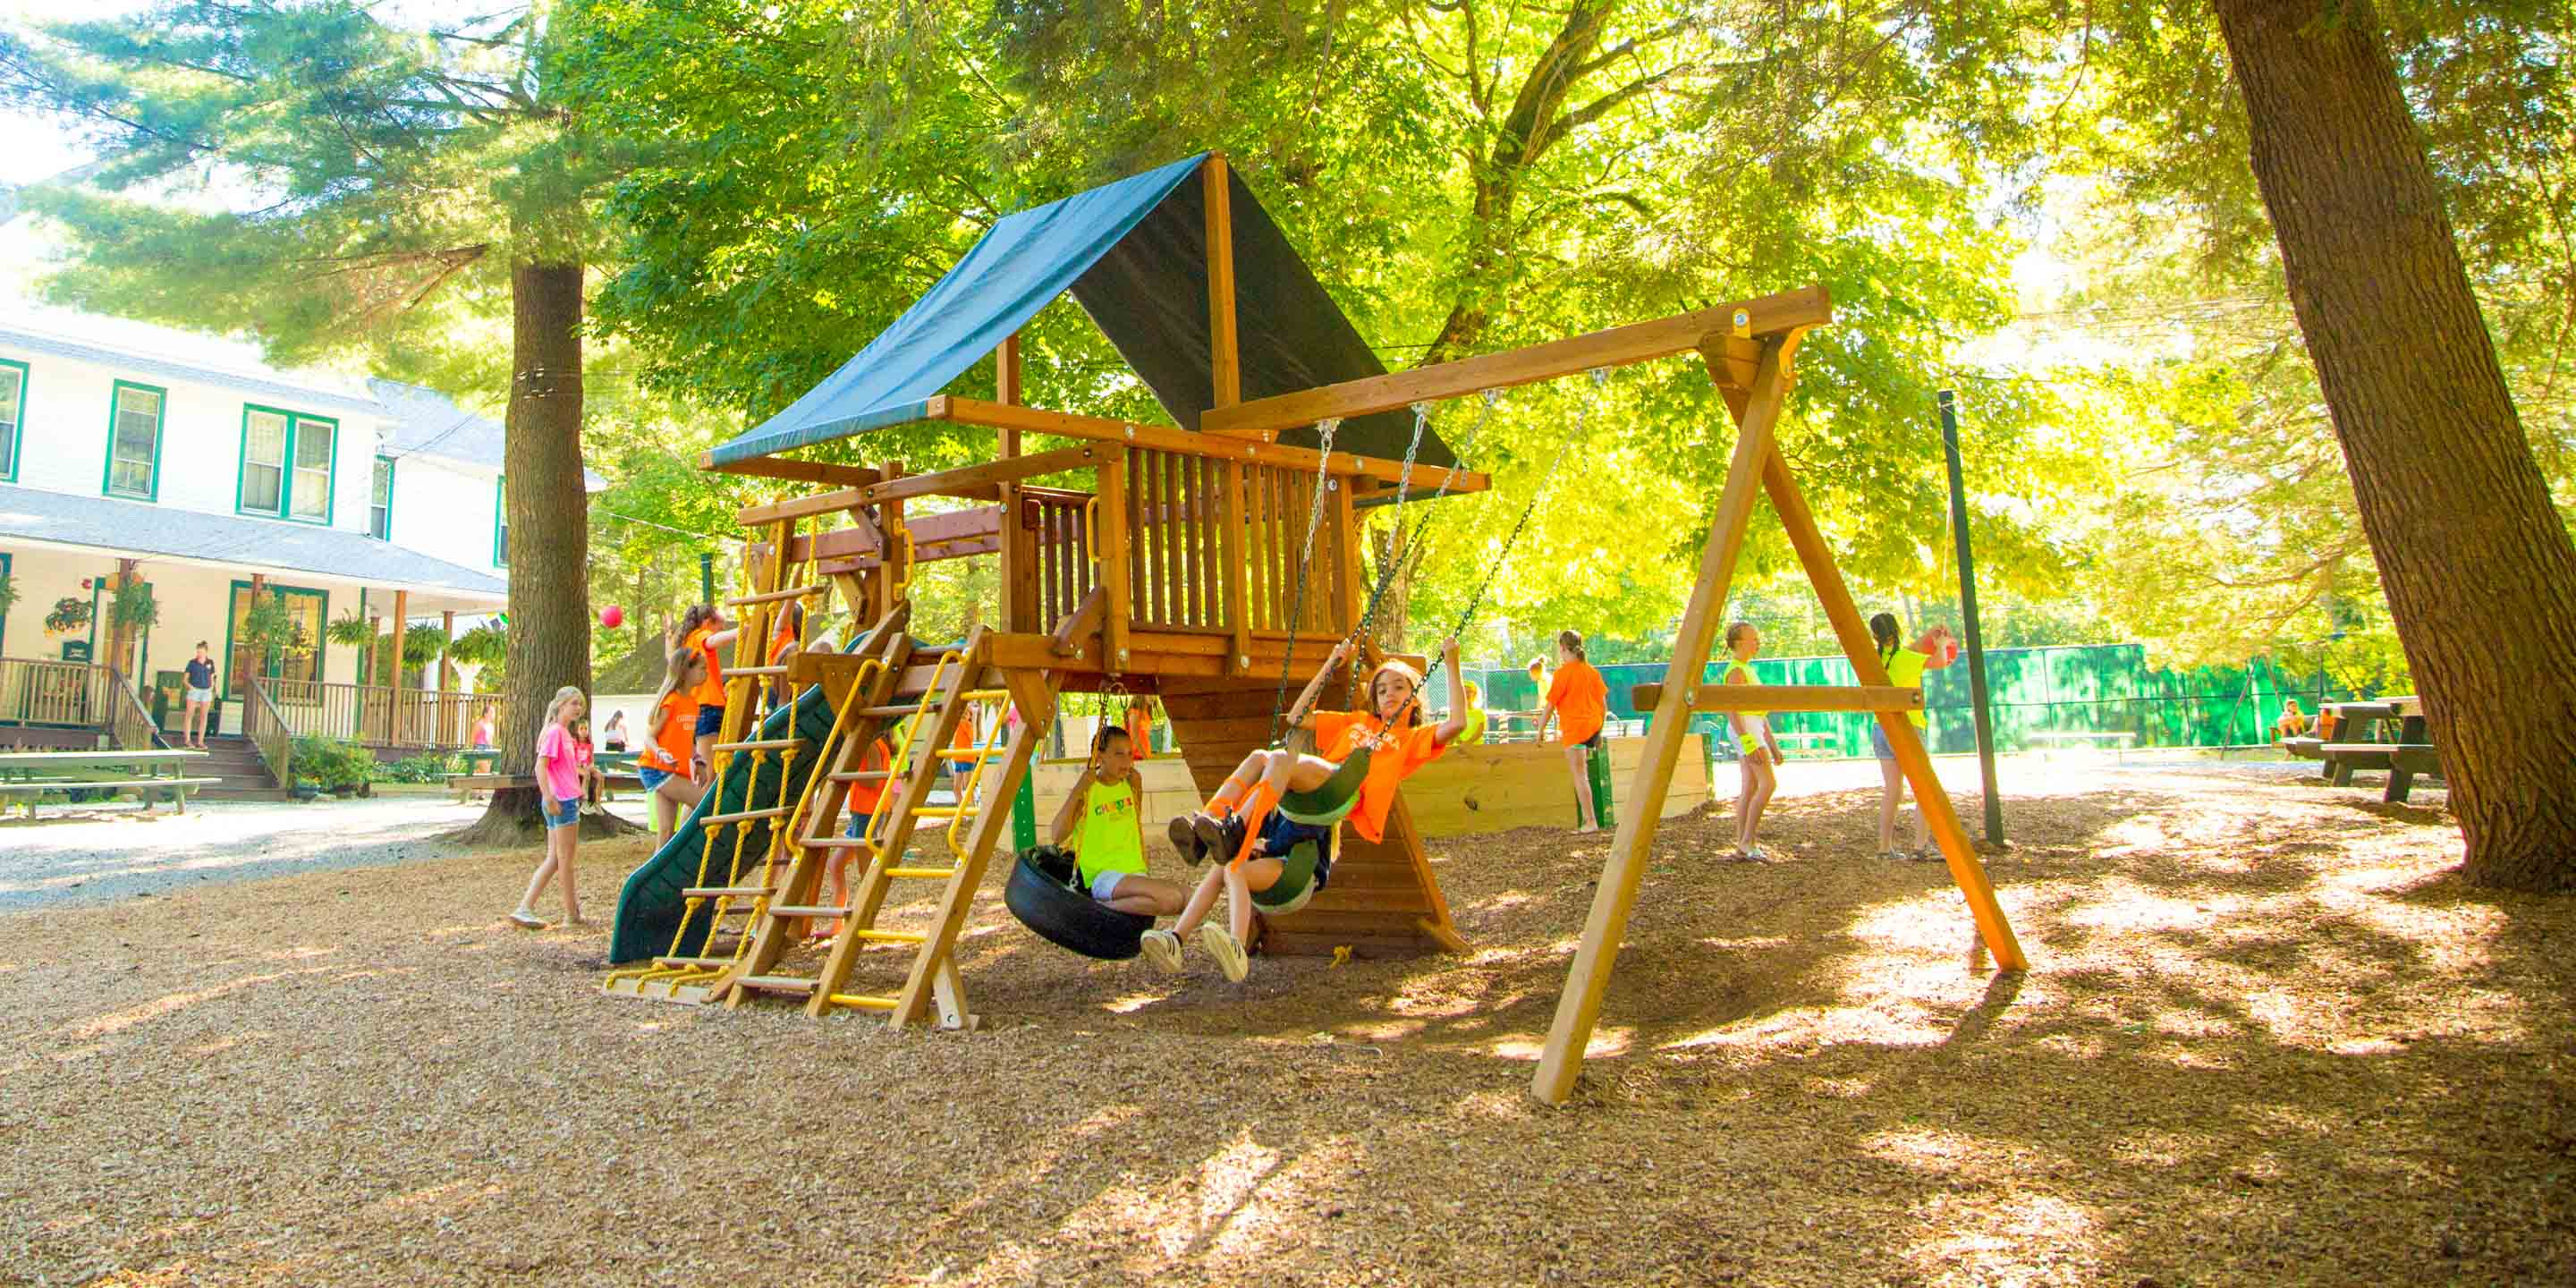 Campers play on playground